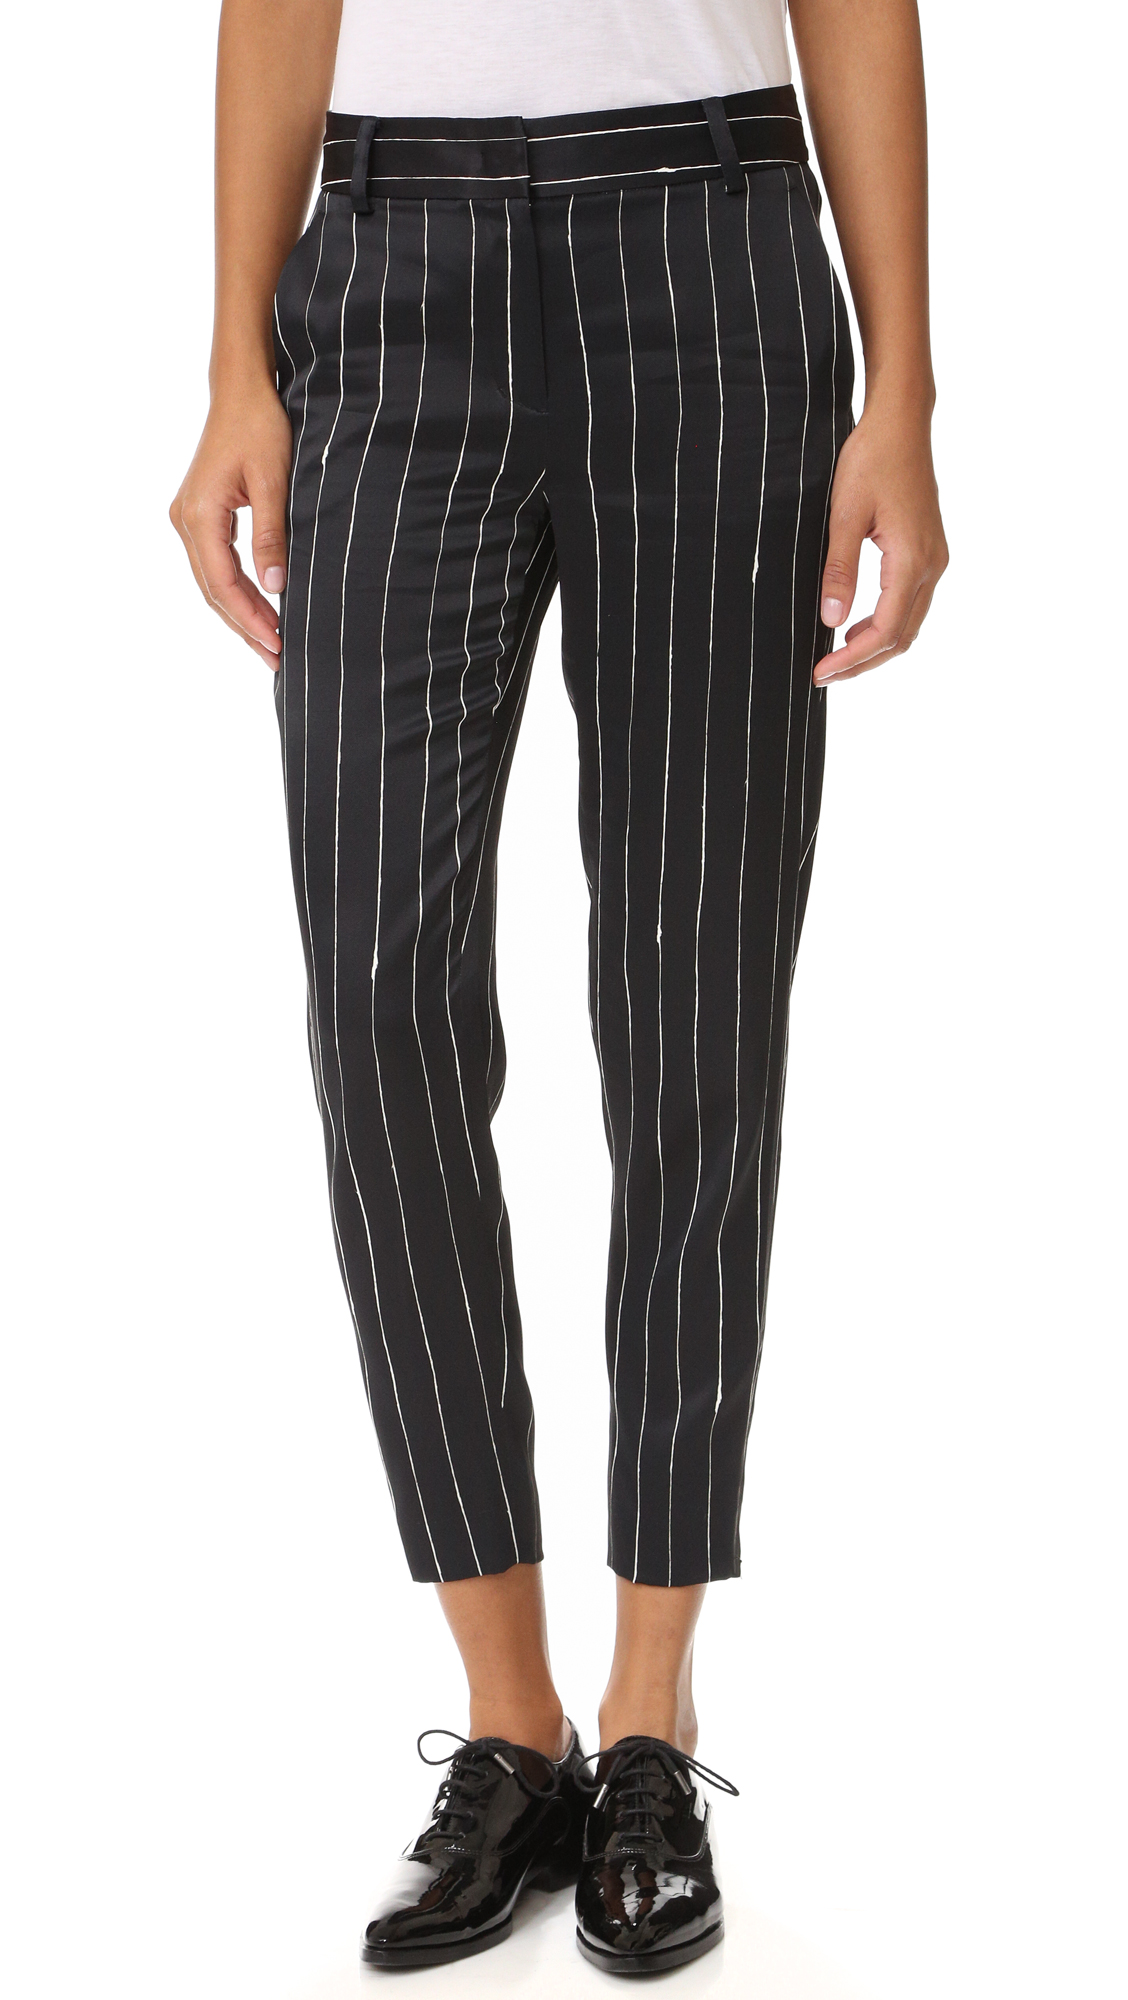 Dkny Tailored Relaxed Pants - Black/Gesso at Shopbop